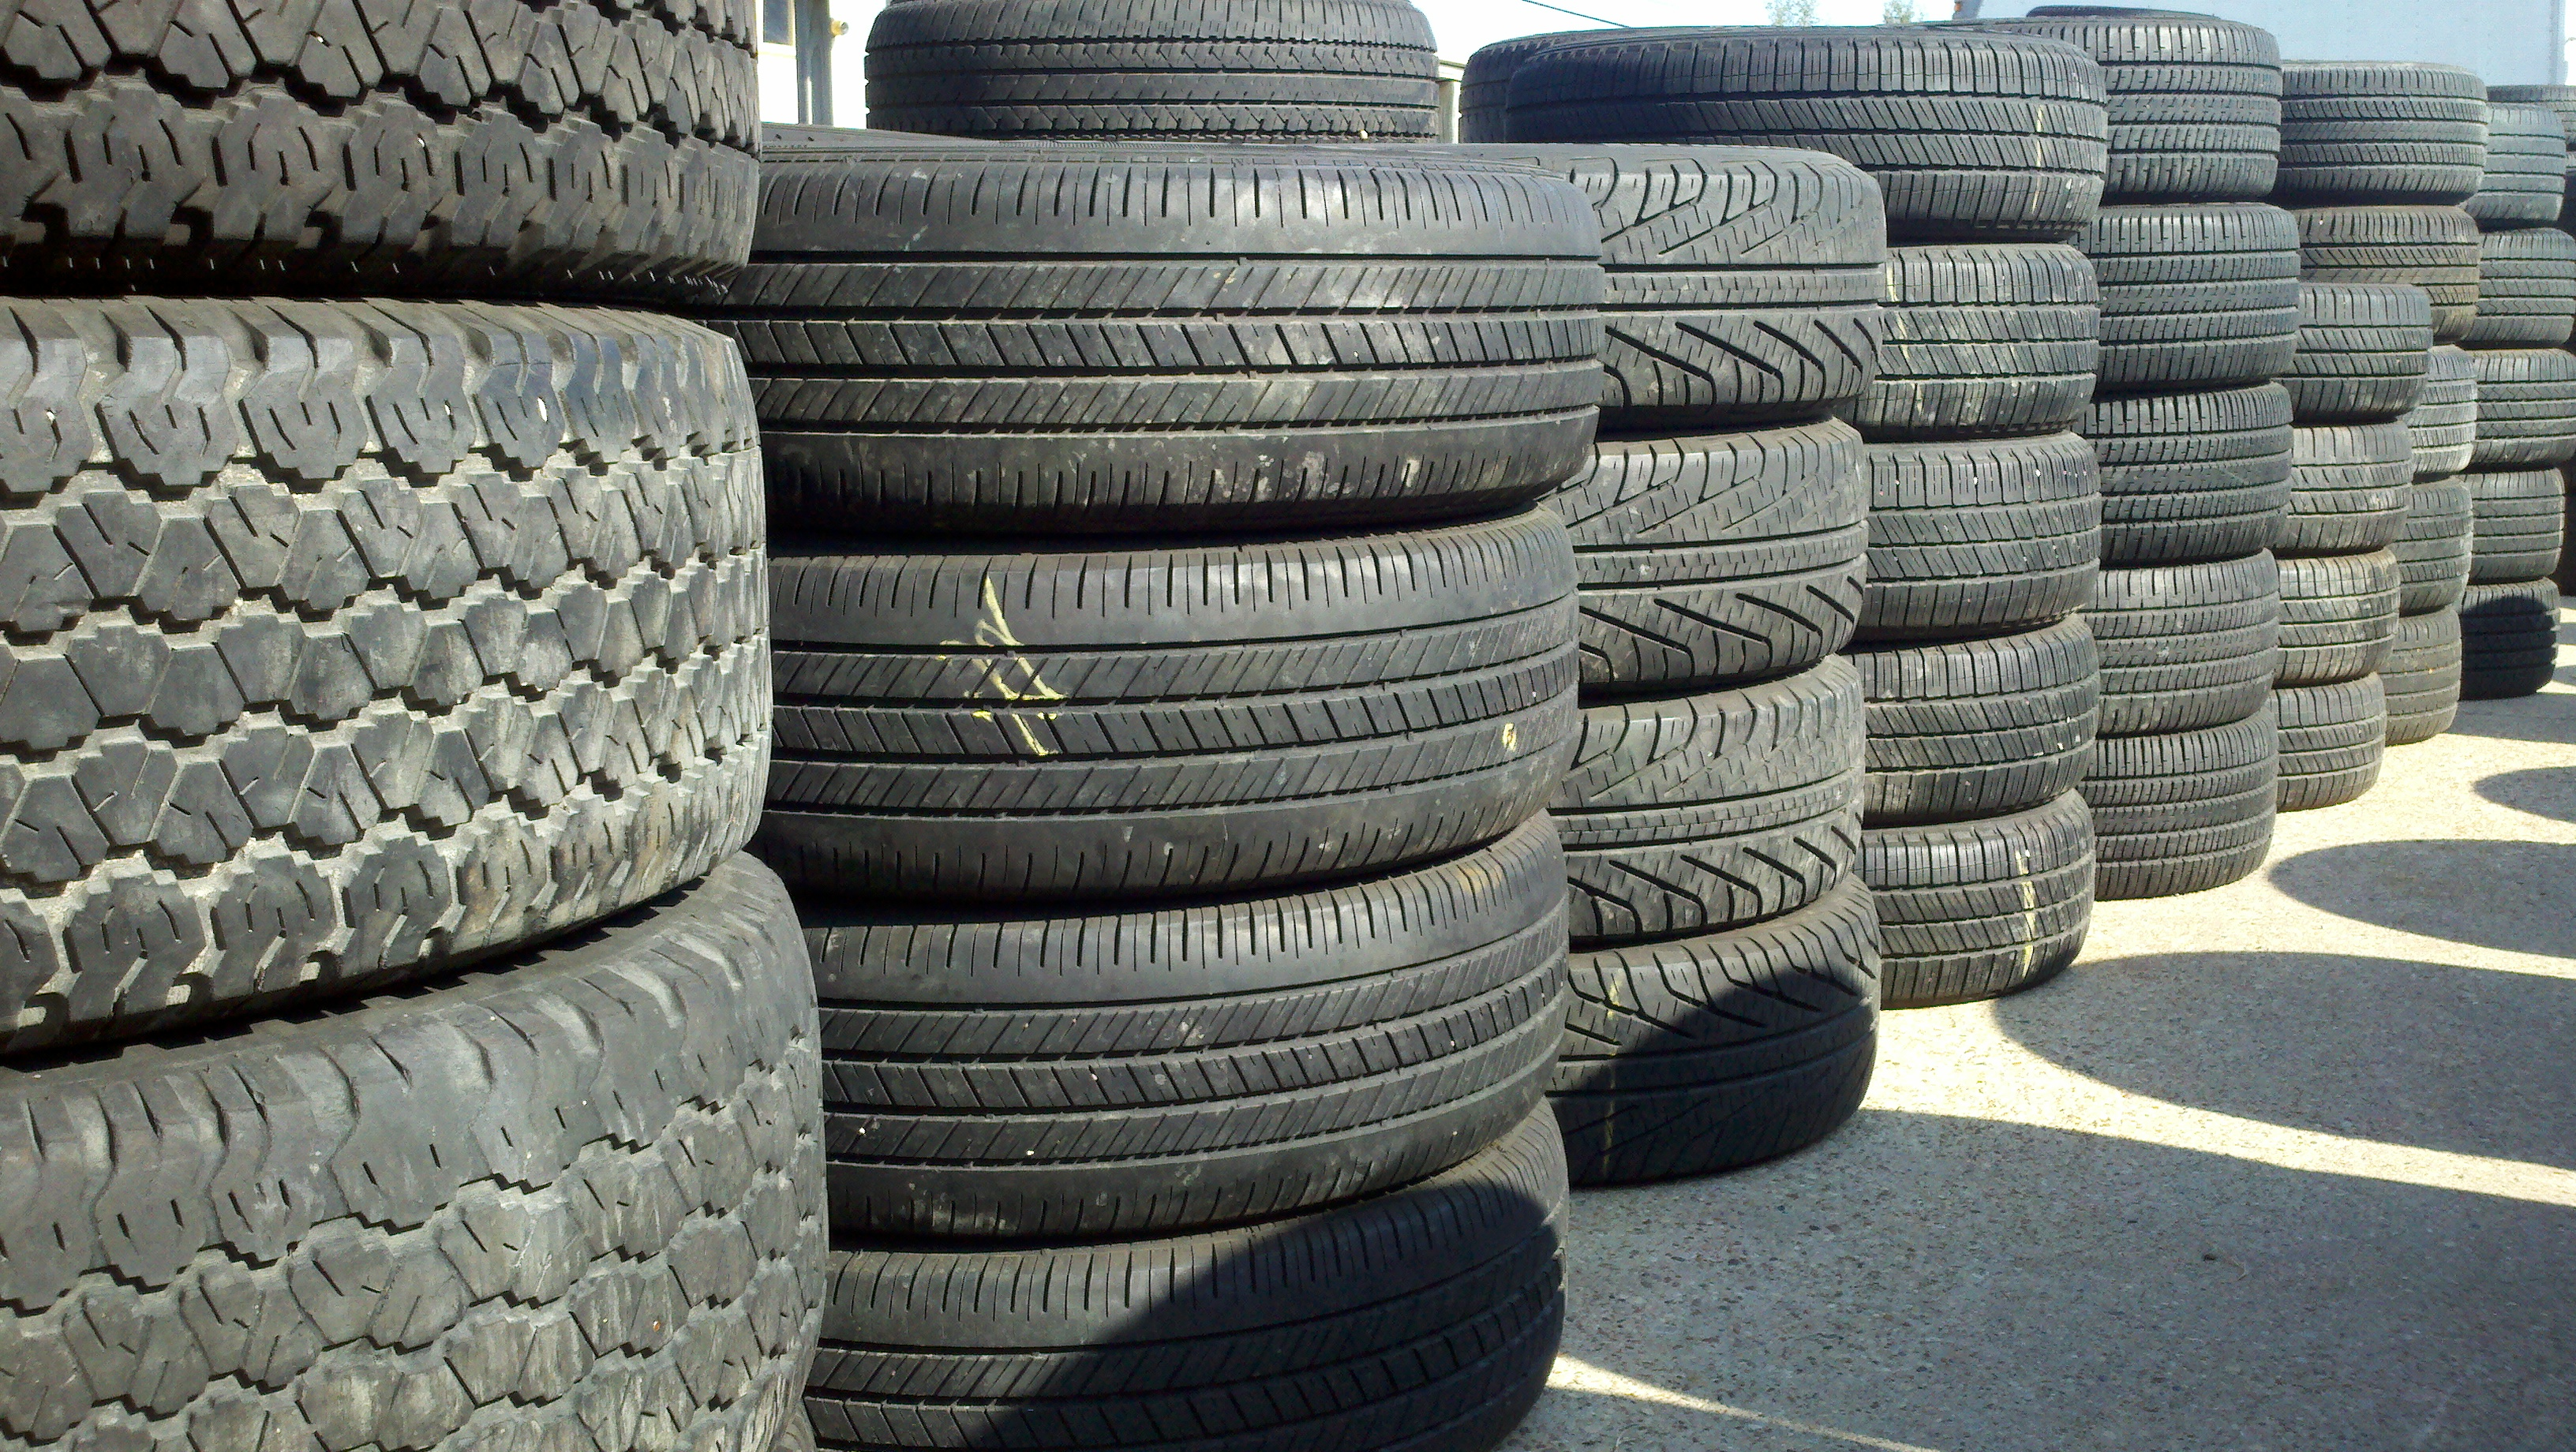 Mc tire auto used tires windsor ontario - What to do with used tires ...